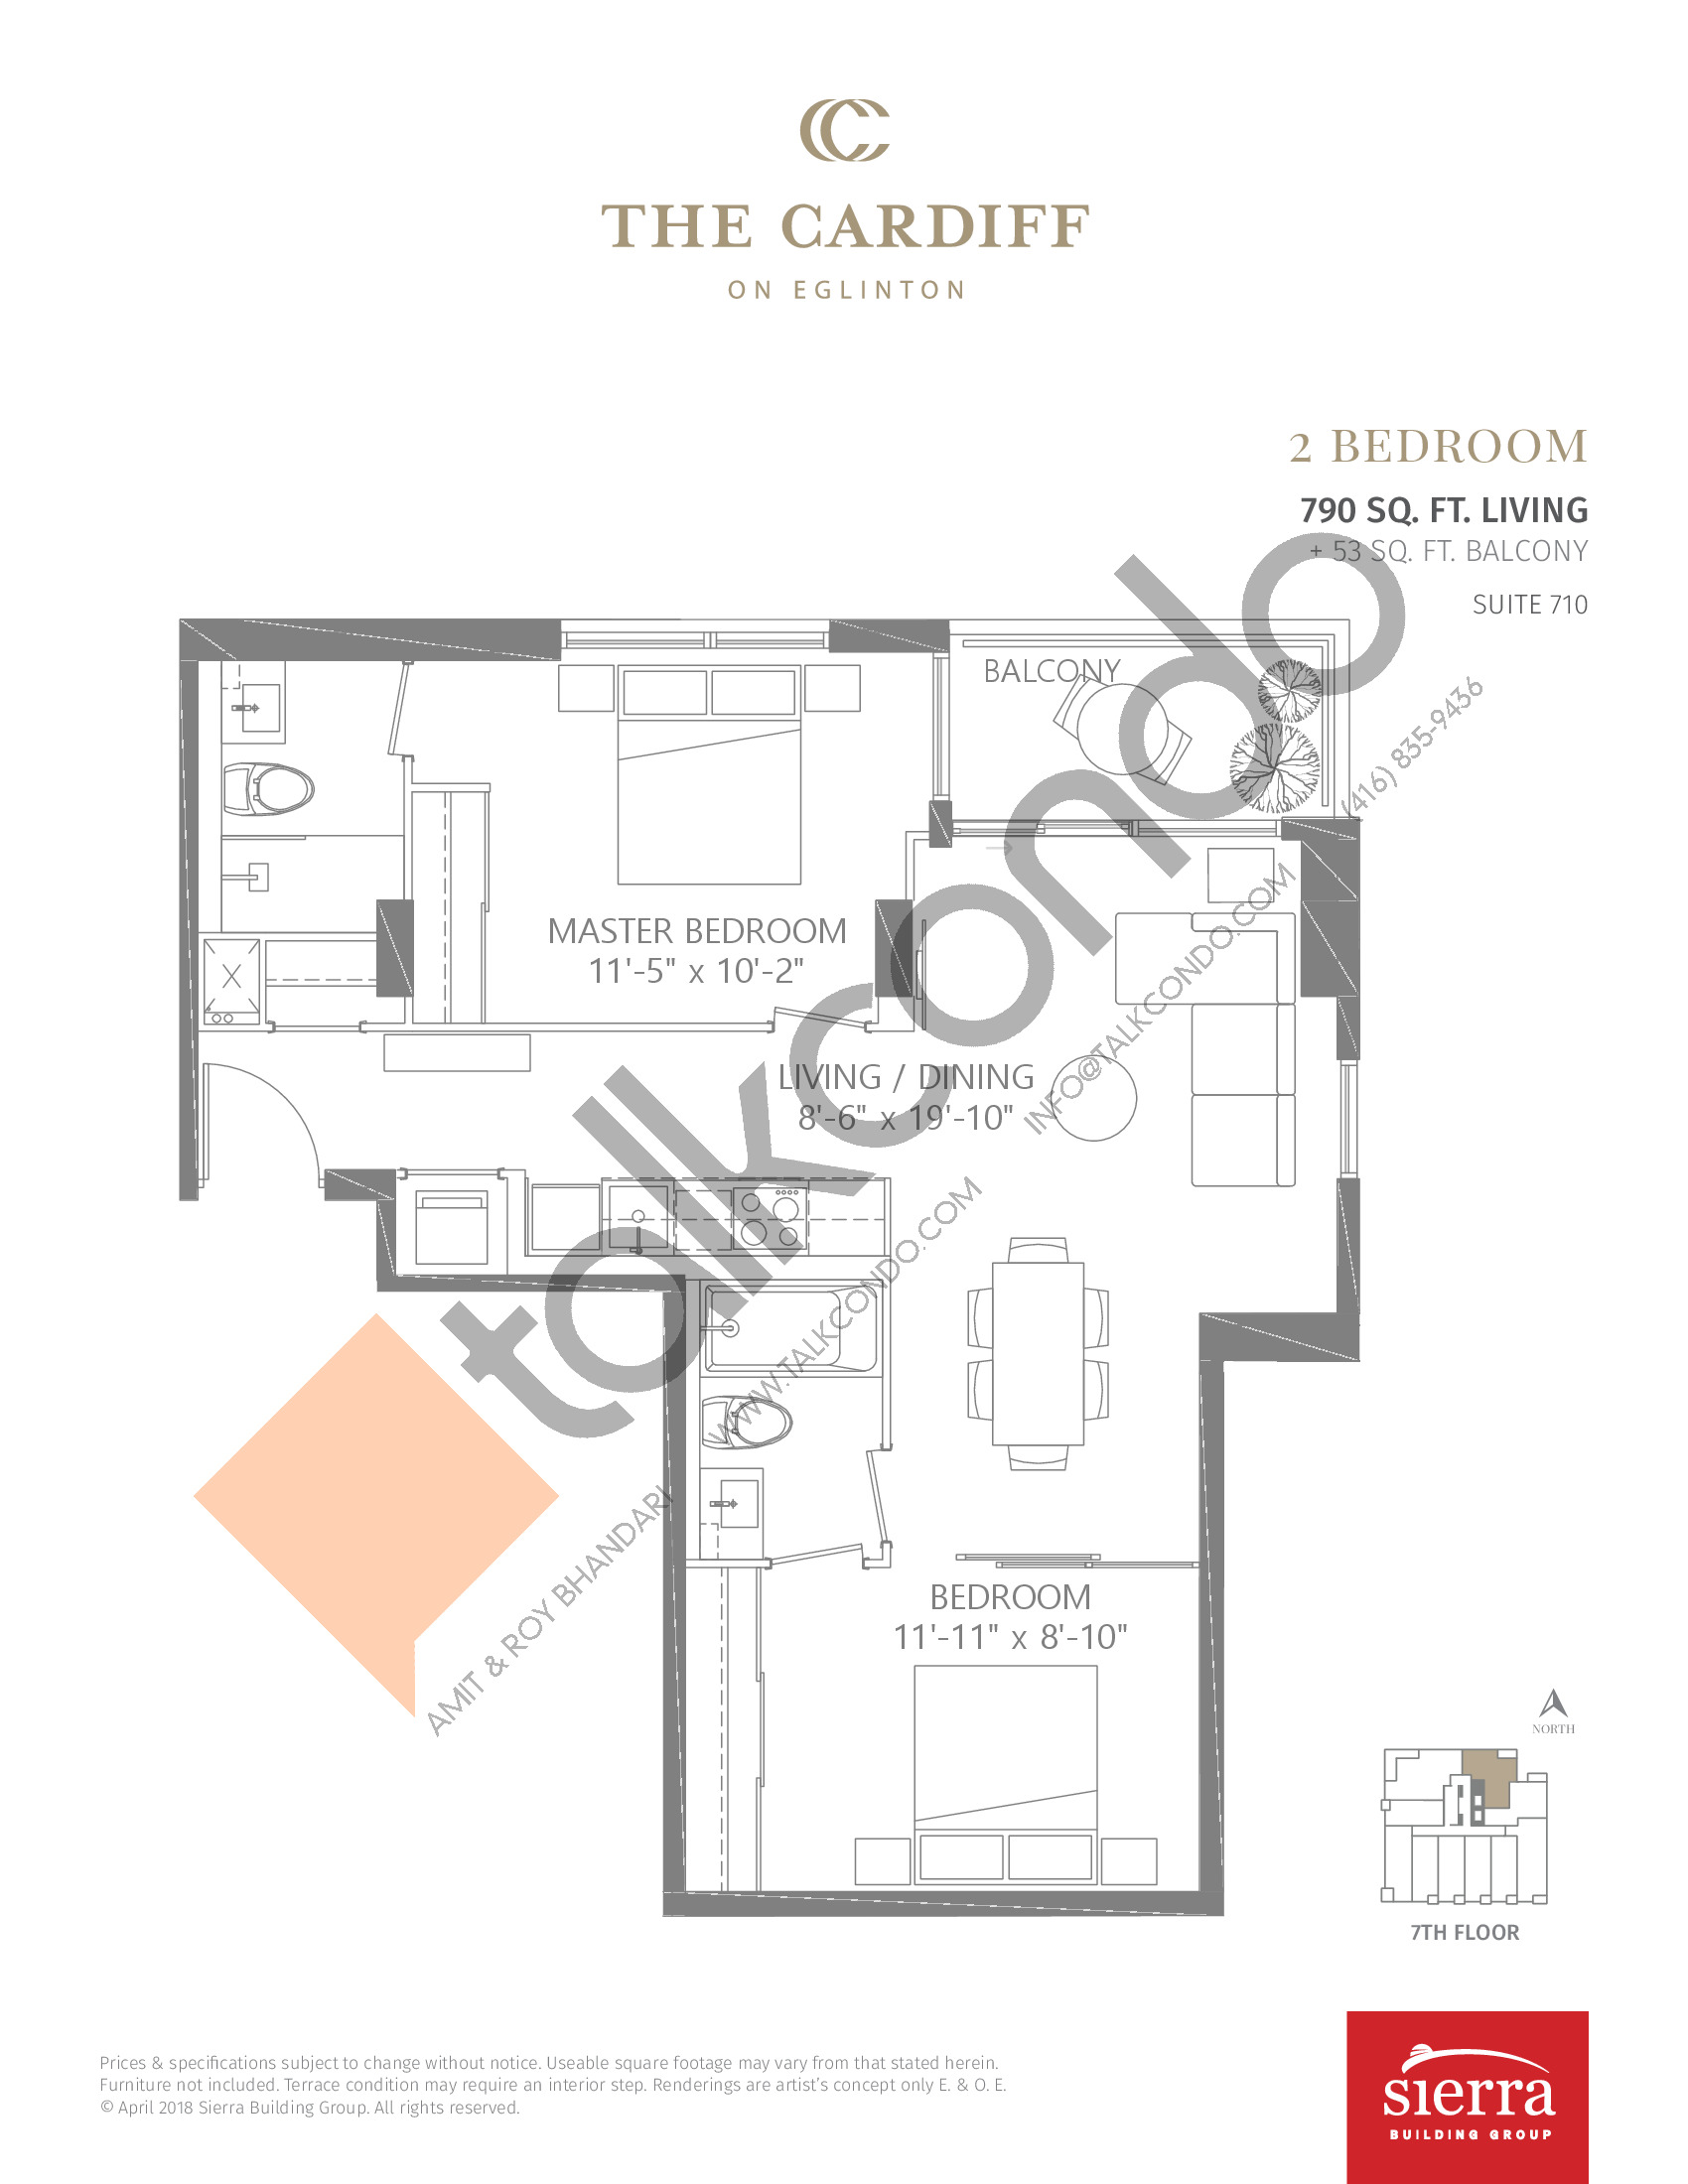 Suite 710 Floor Plan at The Cardiff Condos on Eglinton - 790 sq.ft